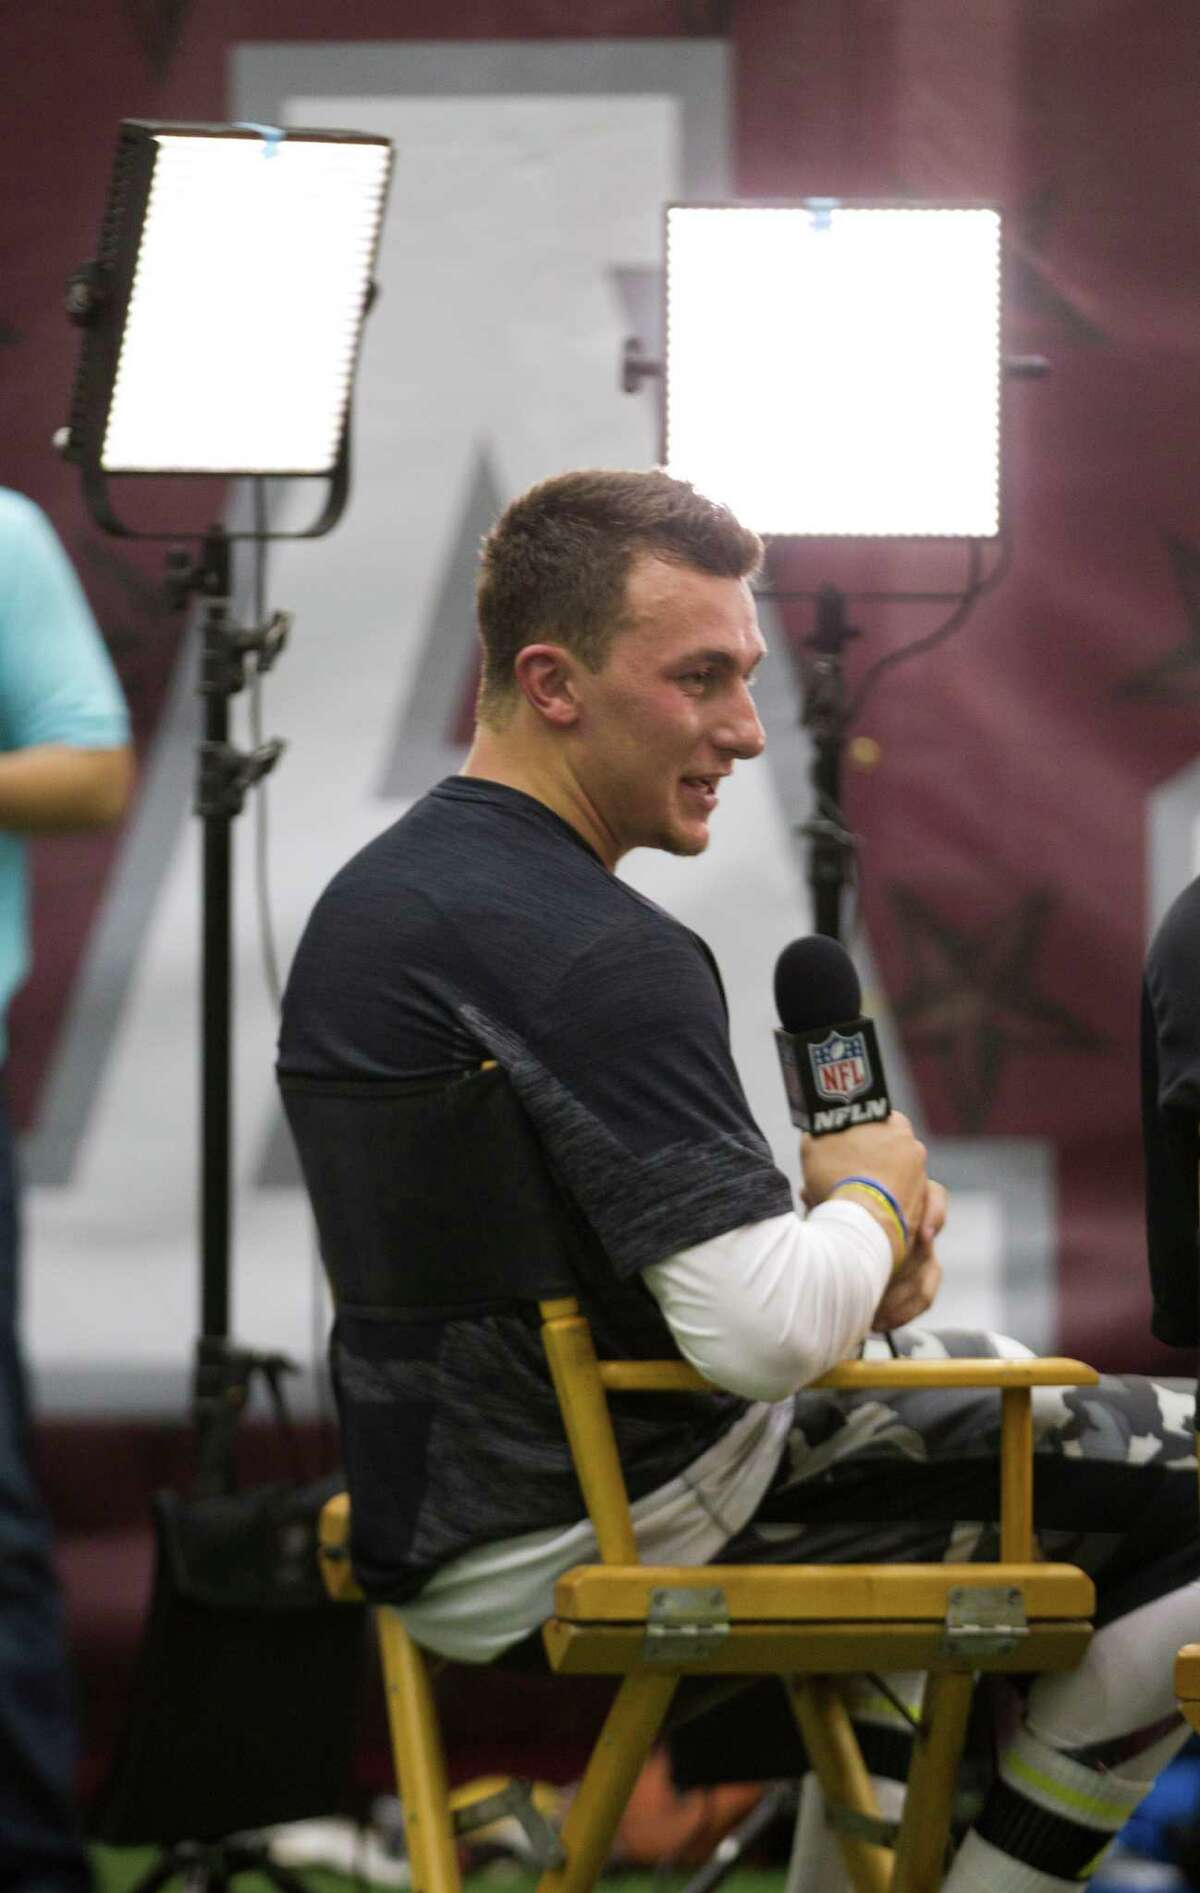 Former Texas A&M quarterback Johnny Manziel gives an interview to the NFL Network following his pro day at McFerren Athletic Center Thursday, March 27, 2014, in College Station. Several NFL coaches and scouts attended the event, including Houston Texans head coach Bill O'Brien and general manger Rick Smith. ( Brett Coomer / Houston Chronicle )